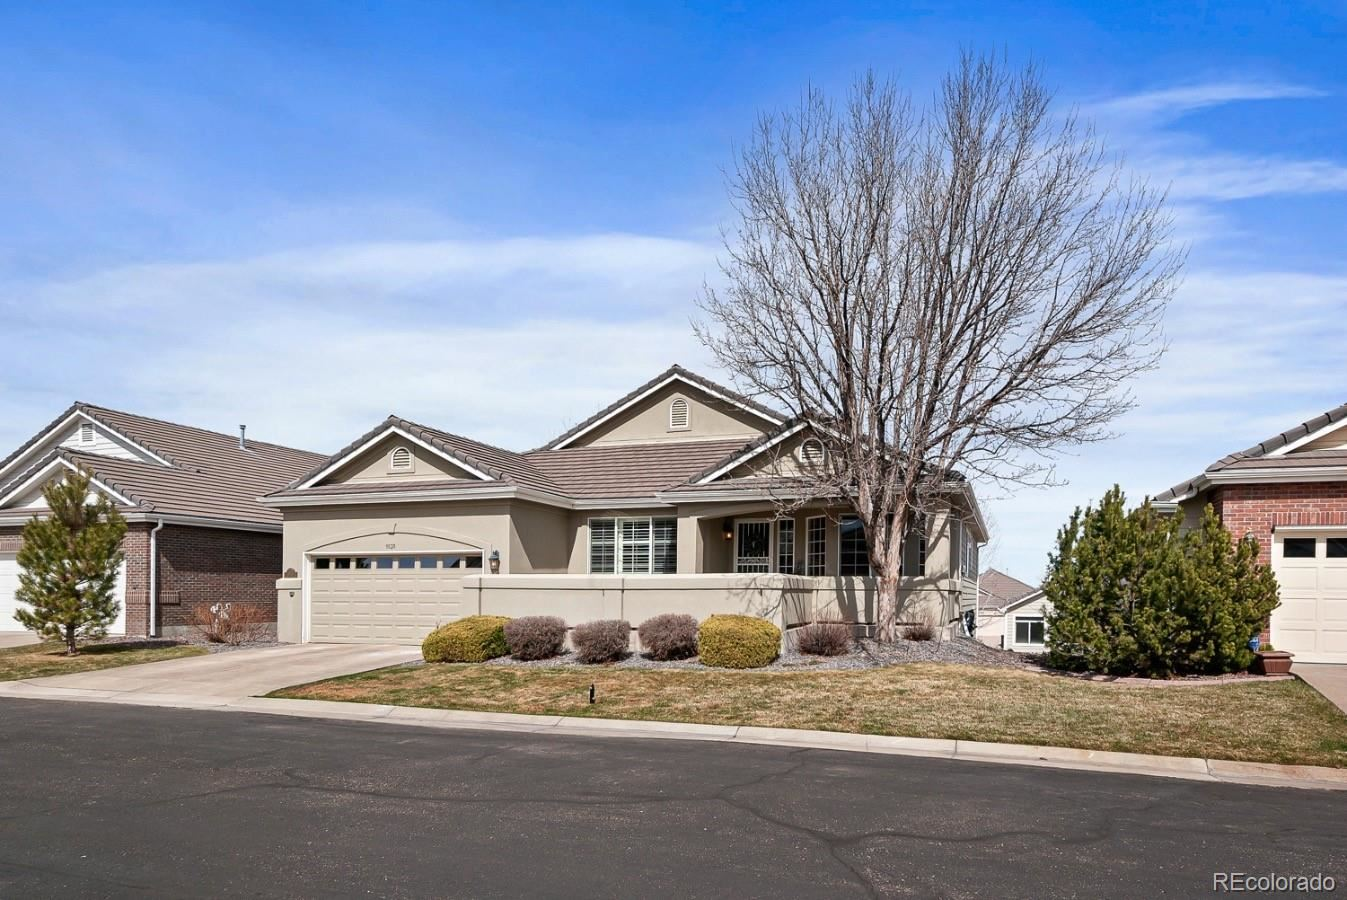 9028 Meadow Hill Circle, Lone Tree, CO 80124 - #: 4812634